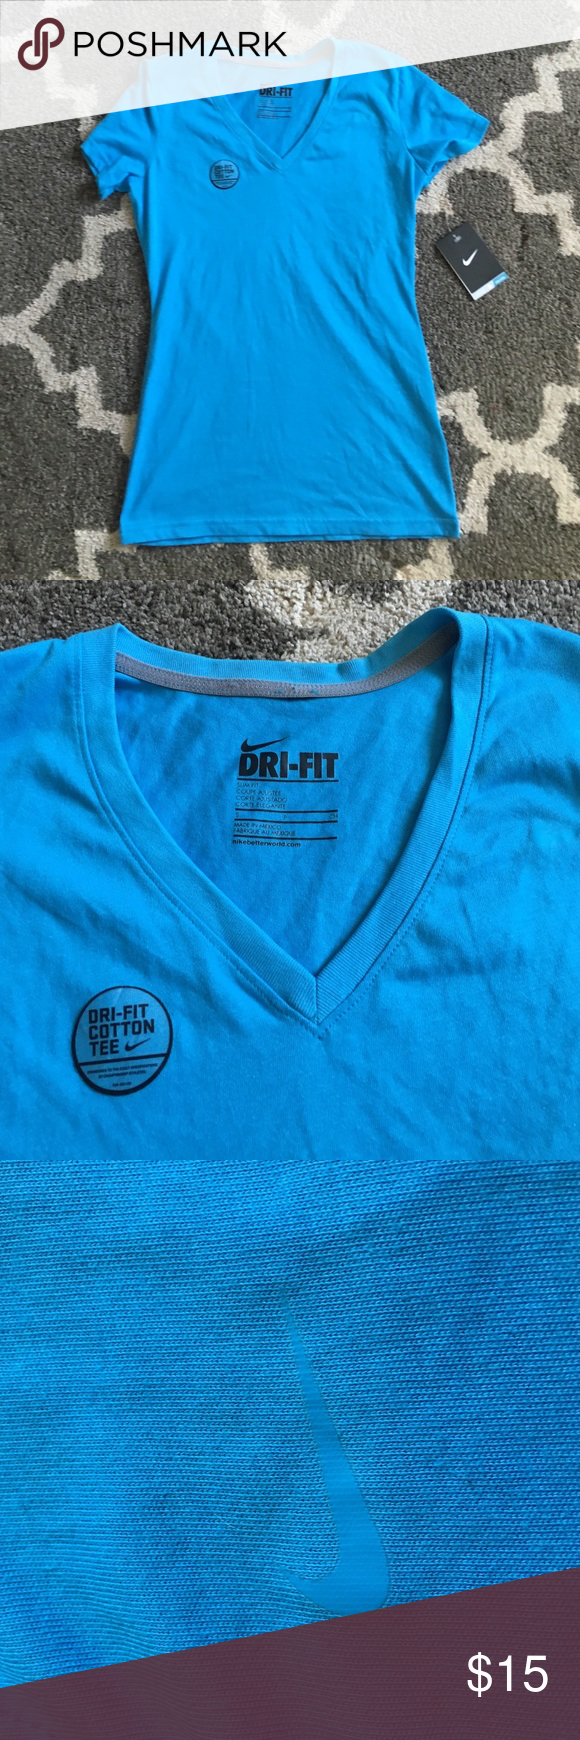 NWT Nike Dri Fit Tee S Perfect condition. No holes. No stains. Nike Tops Tees - Short Sleeve